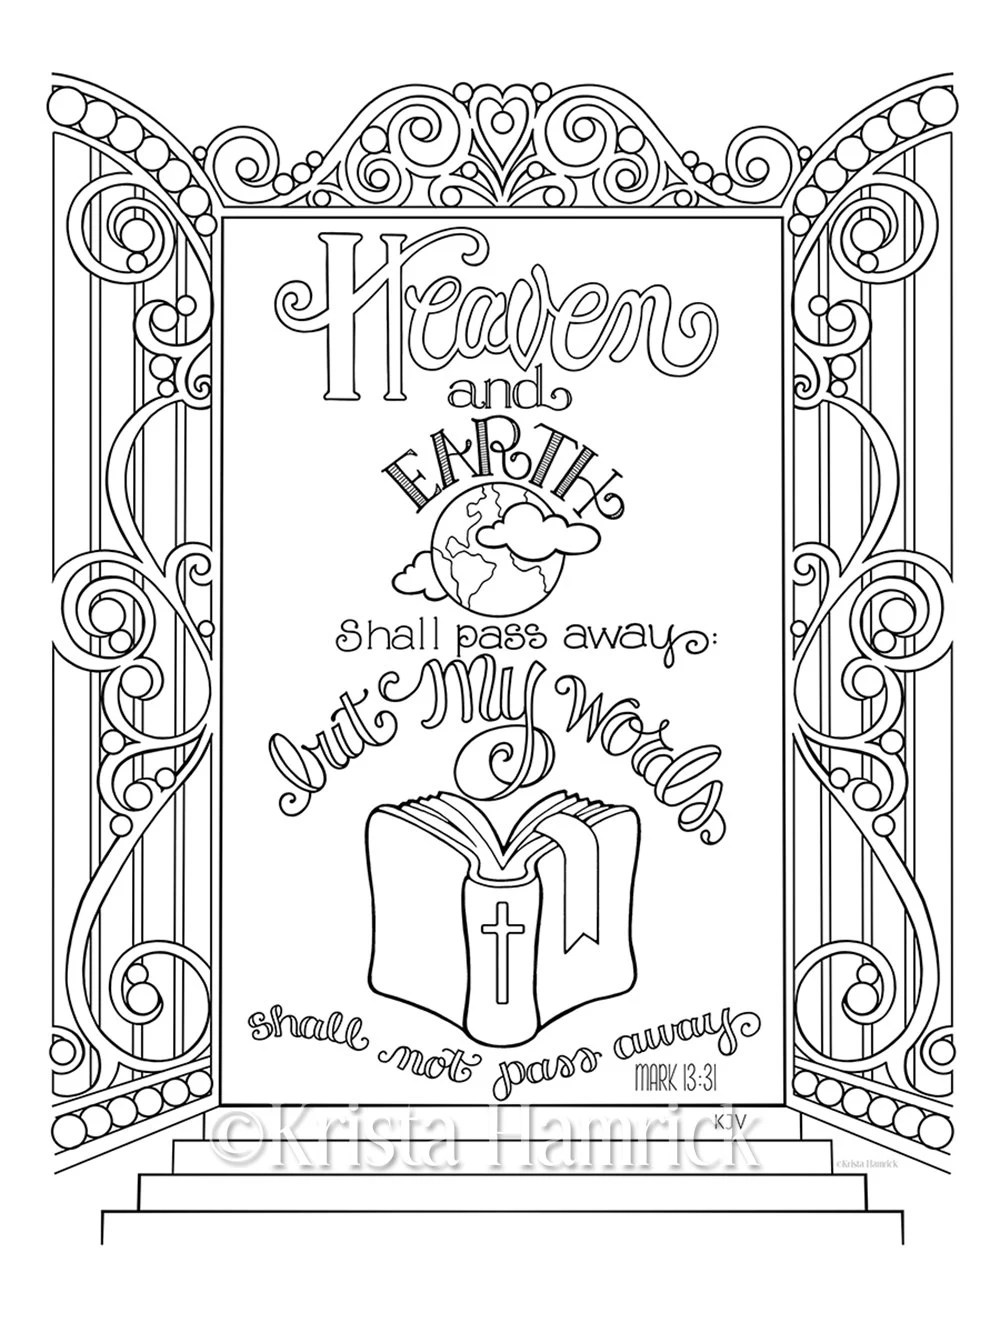 My Words Shall Not Pass Away coloring page 8.5X11 Bible